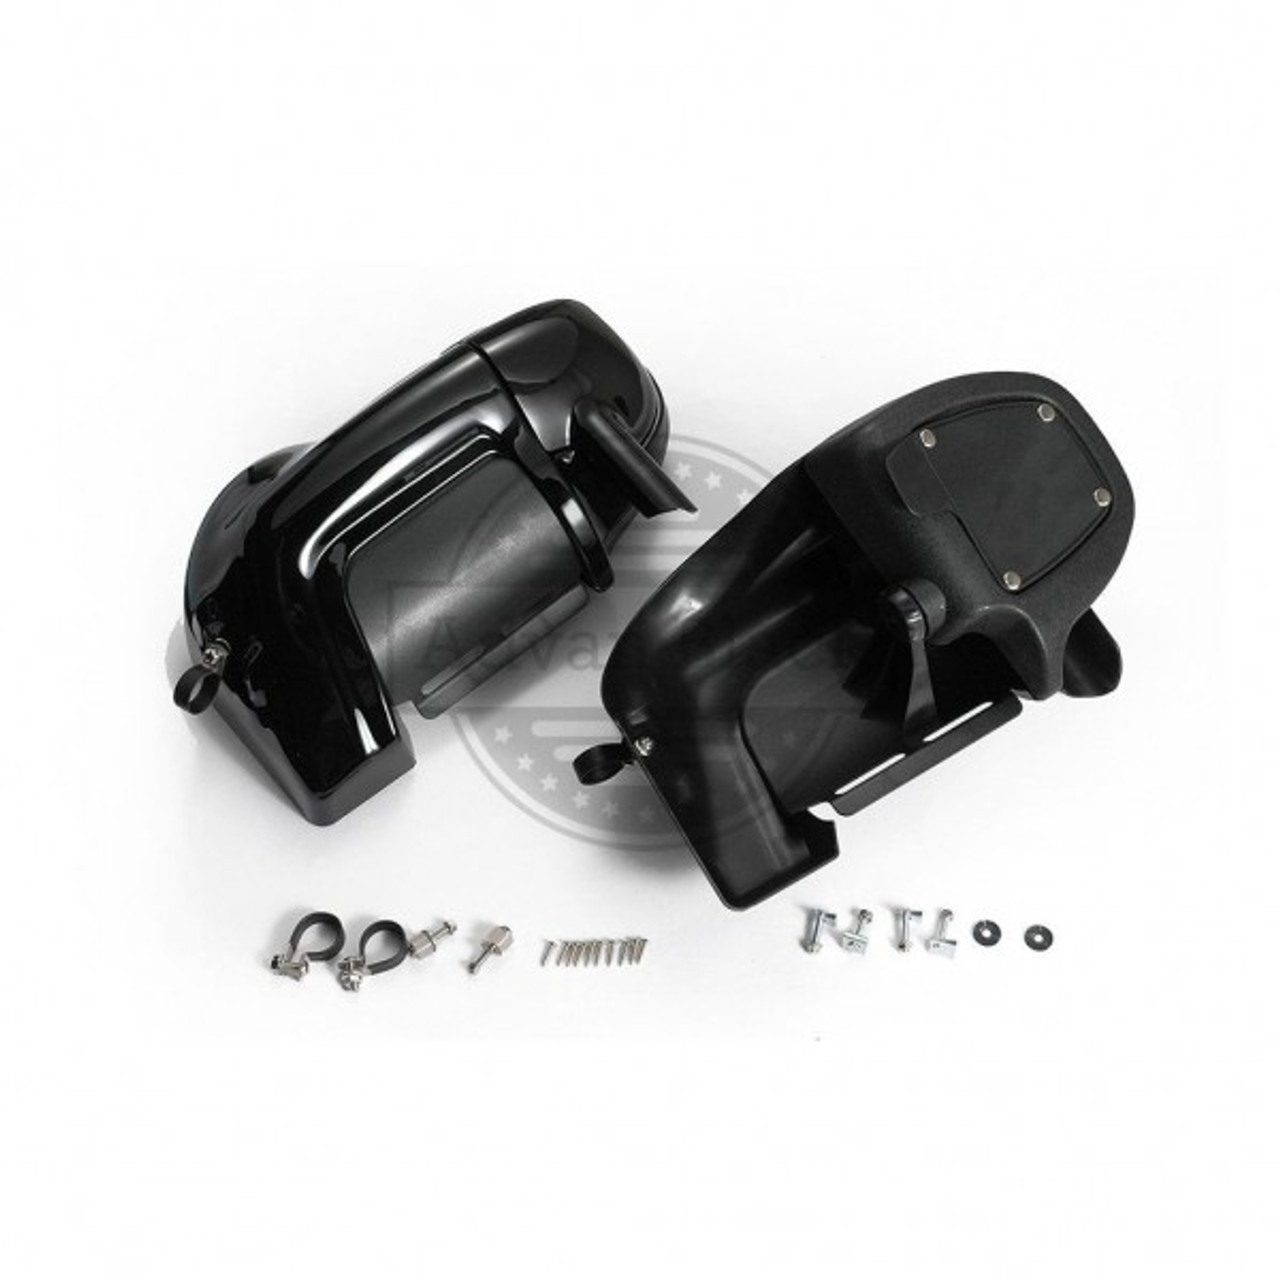 Lower Vented Fairings Mounting hardware Screw Clamps Clips for Harley Davidson Touring 1983-2013